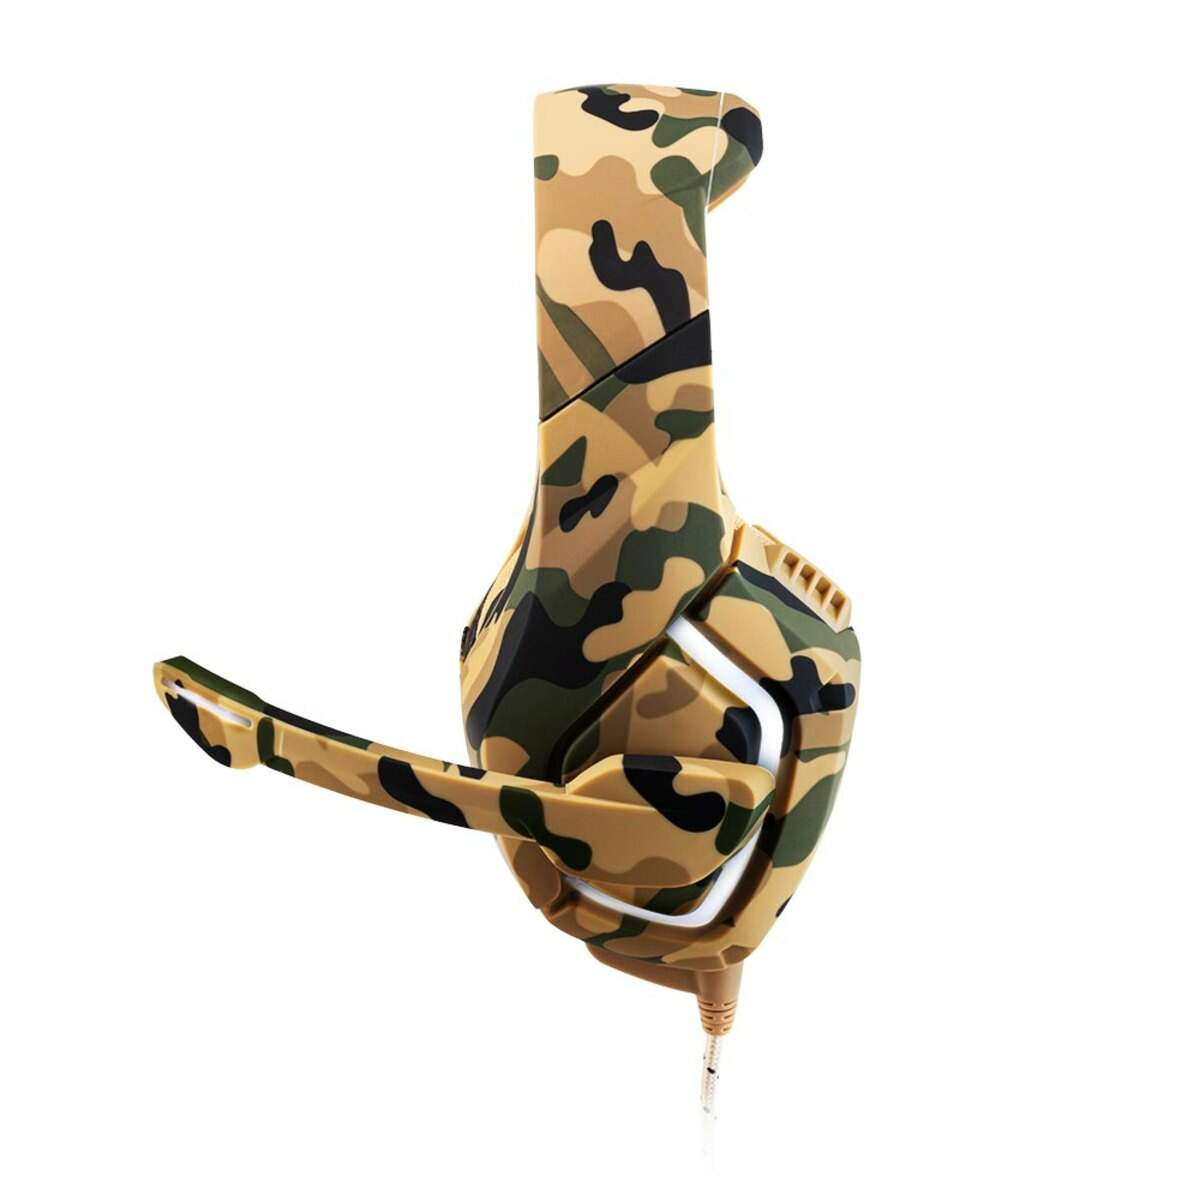 HEADSET GAMER WARRIOR STRATON CAMUFLADO PH305